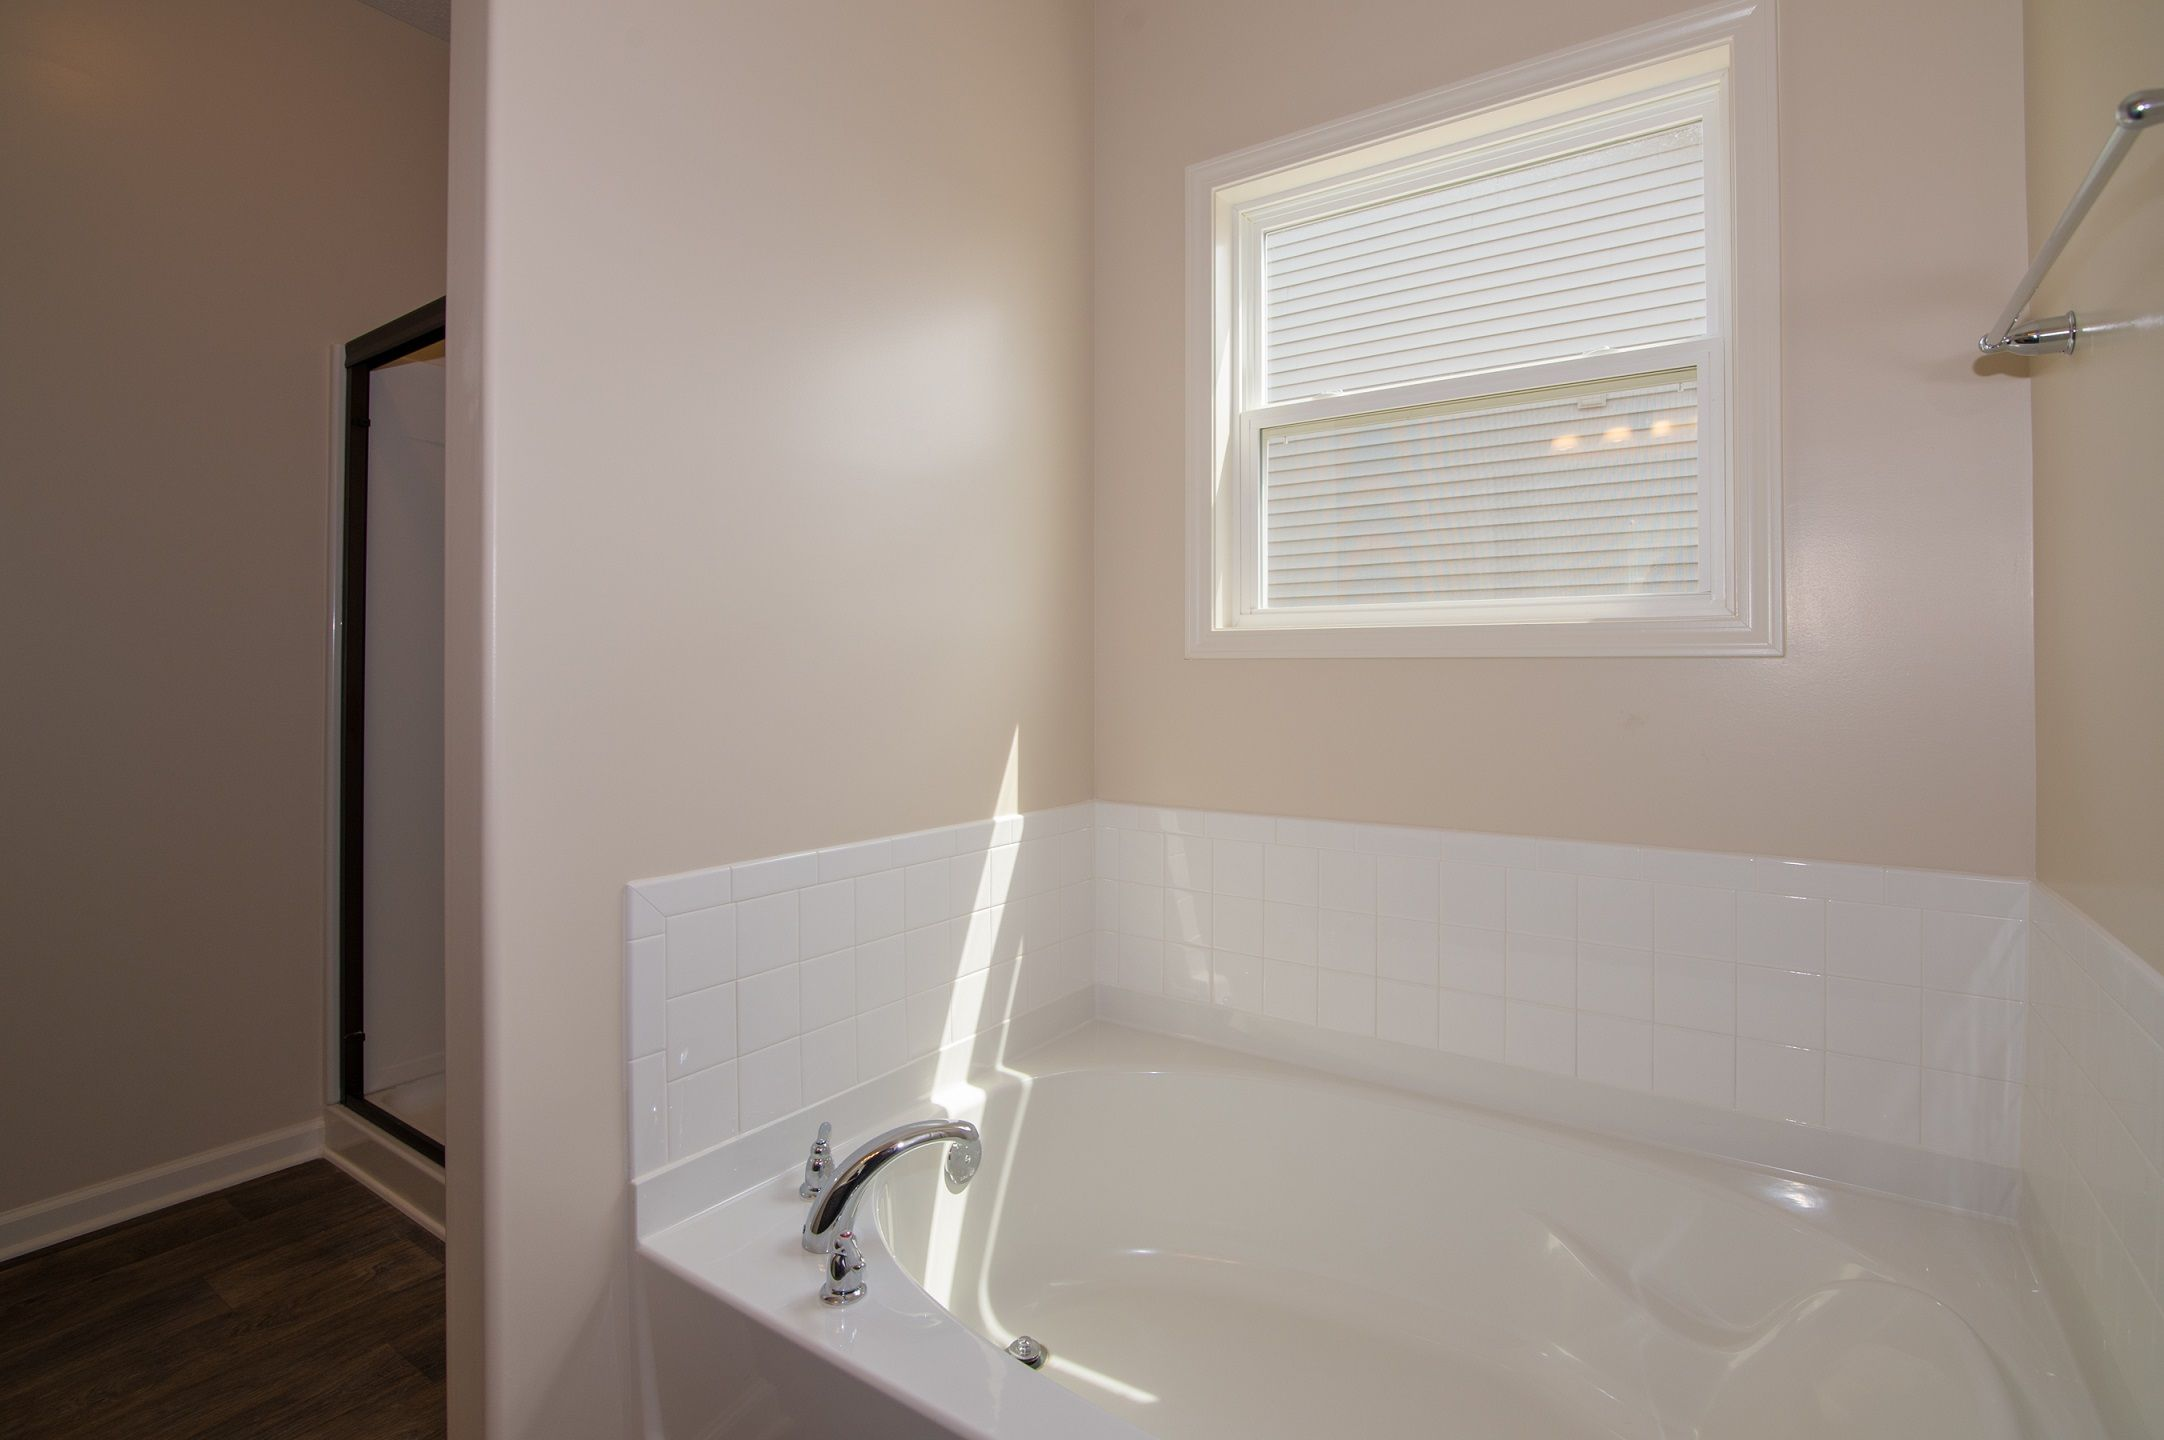 Bathroom featured in the Heyden By D.R. Horton in Fort Wayne, IN